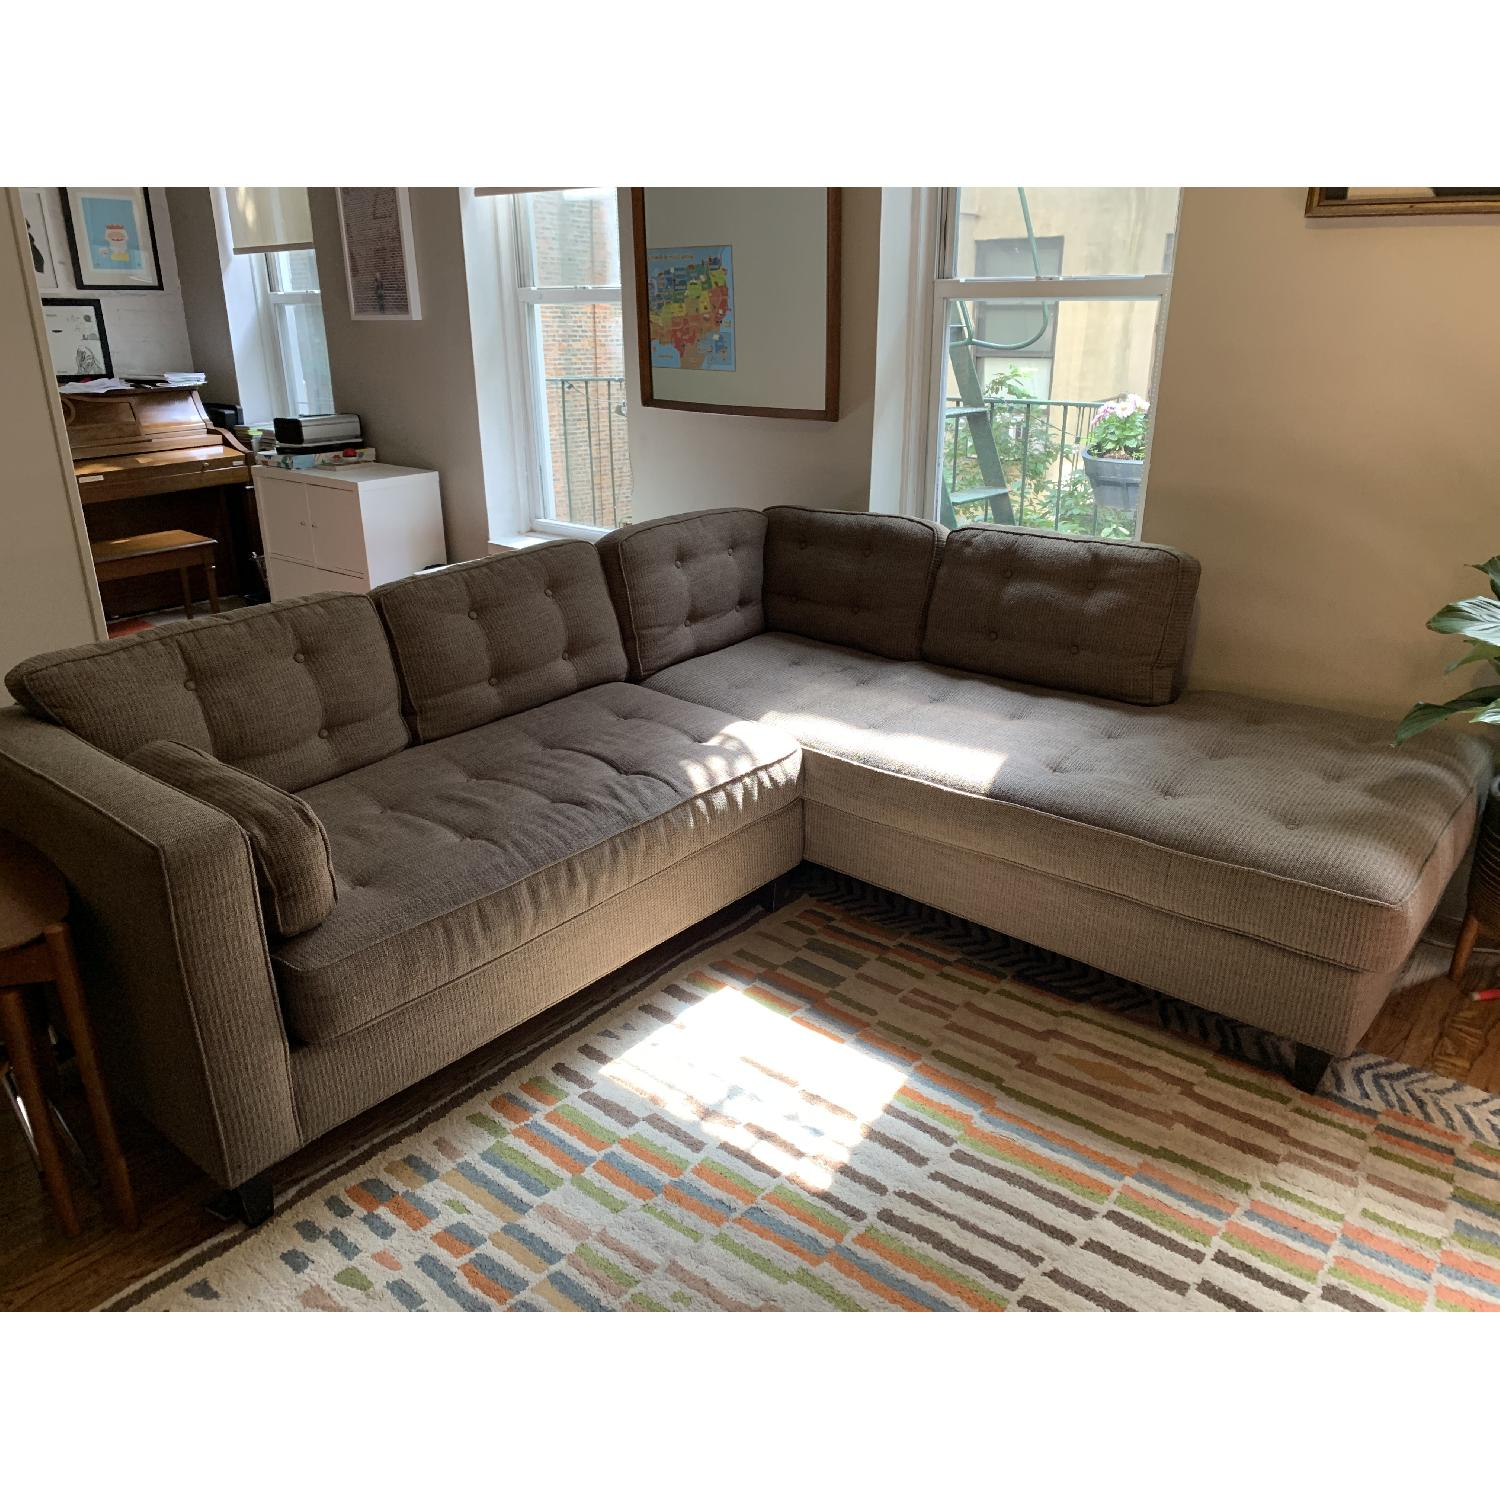 A&G Merch Greenpoint Sectional Sofa-1